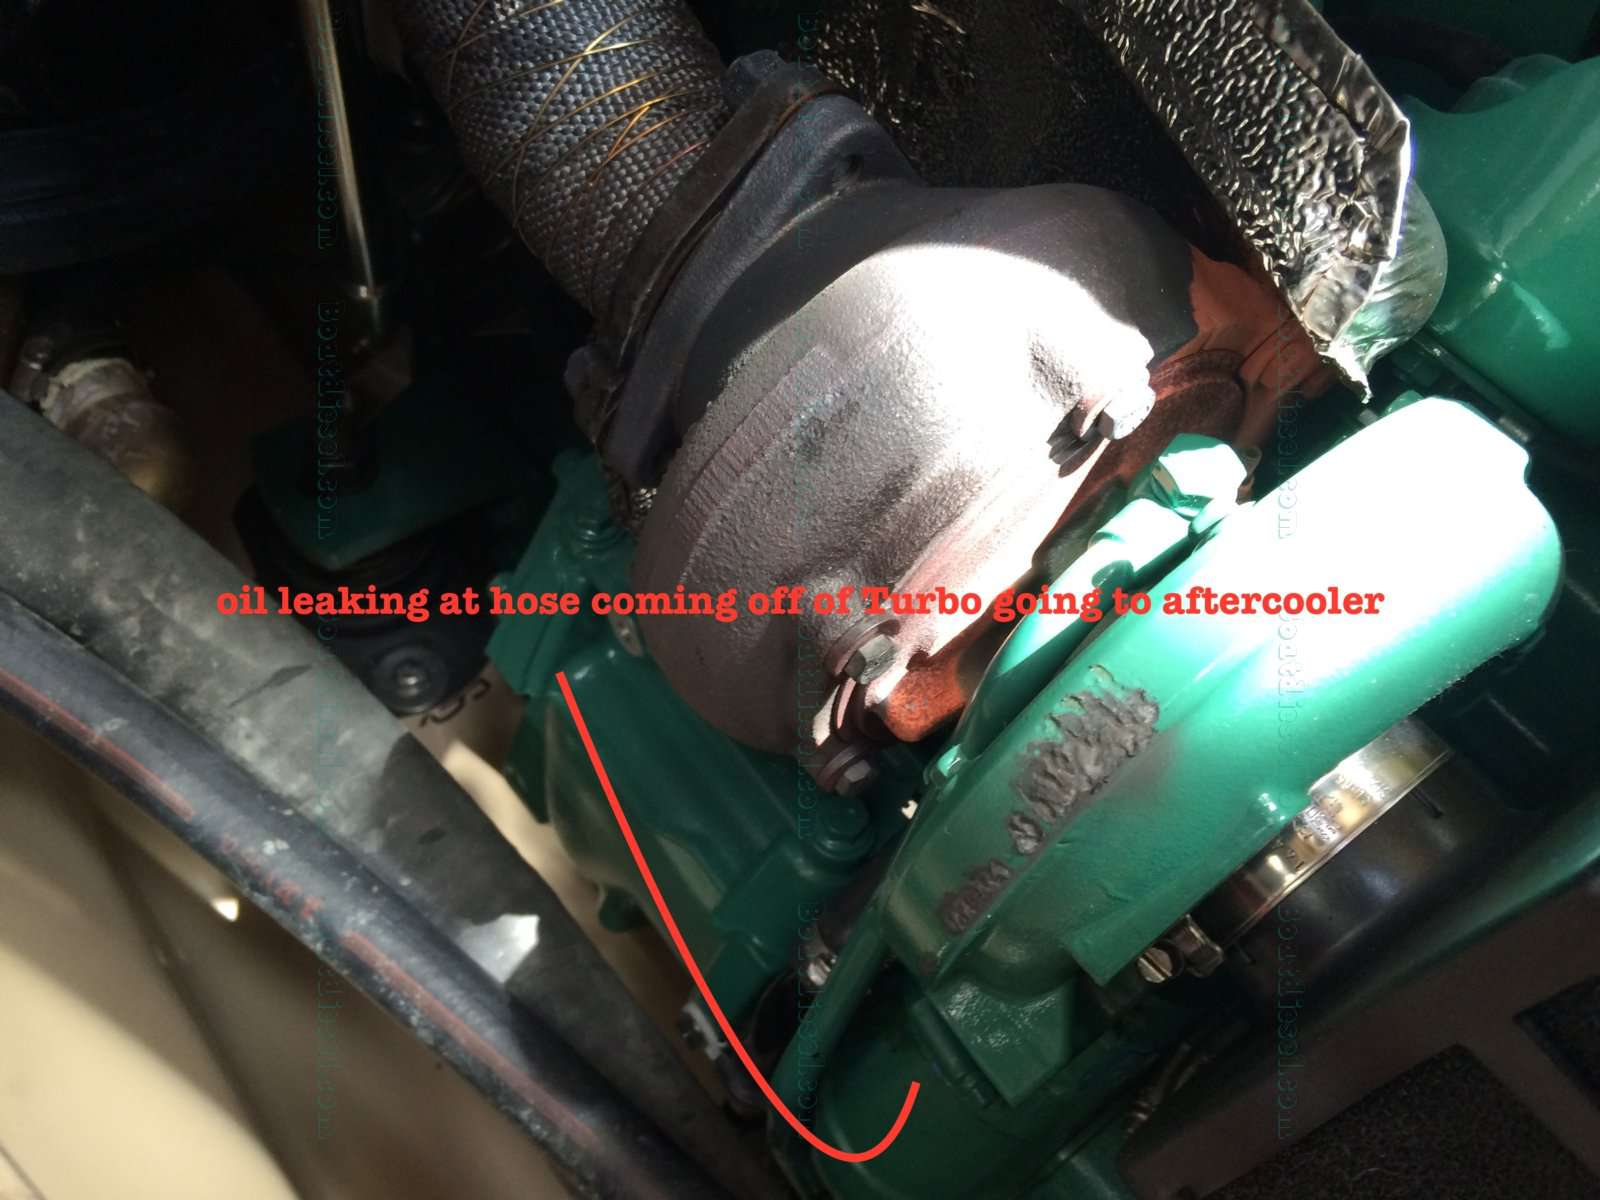 Volvo Marine - D3 Series - Oil leaking from turbo outlet to